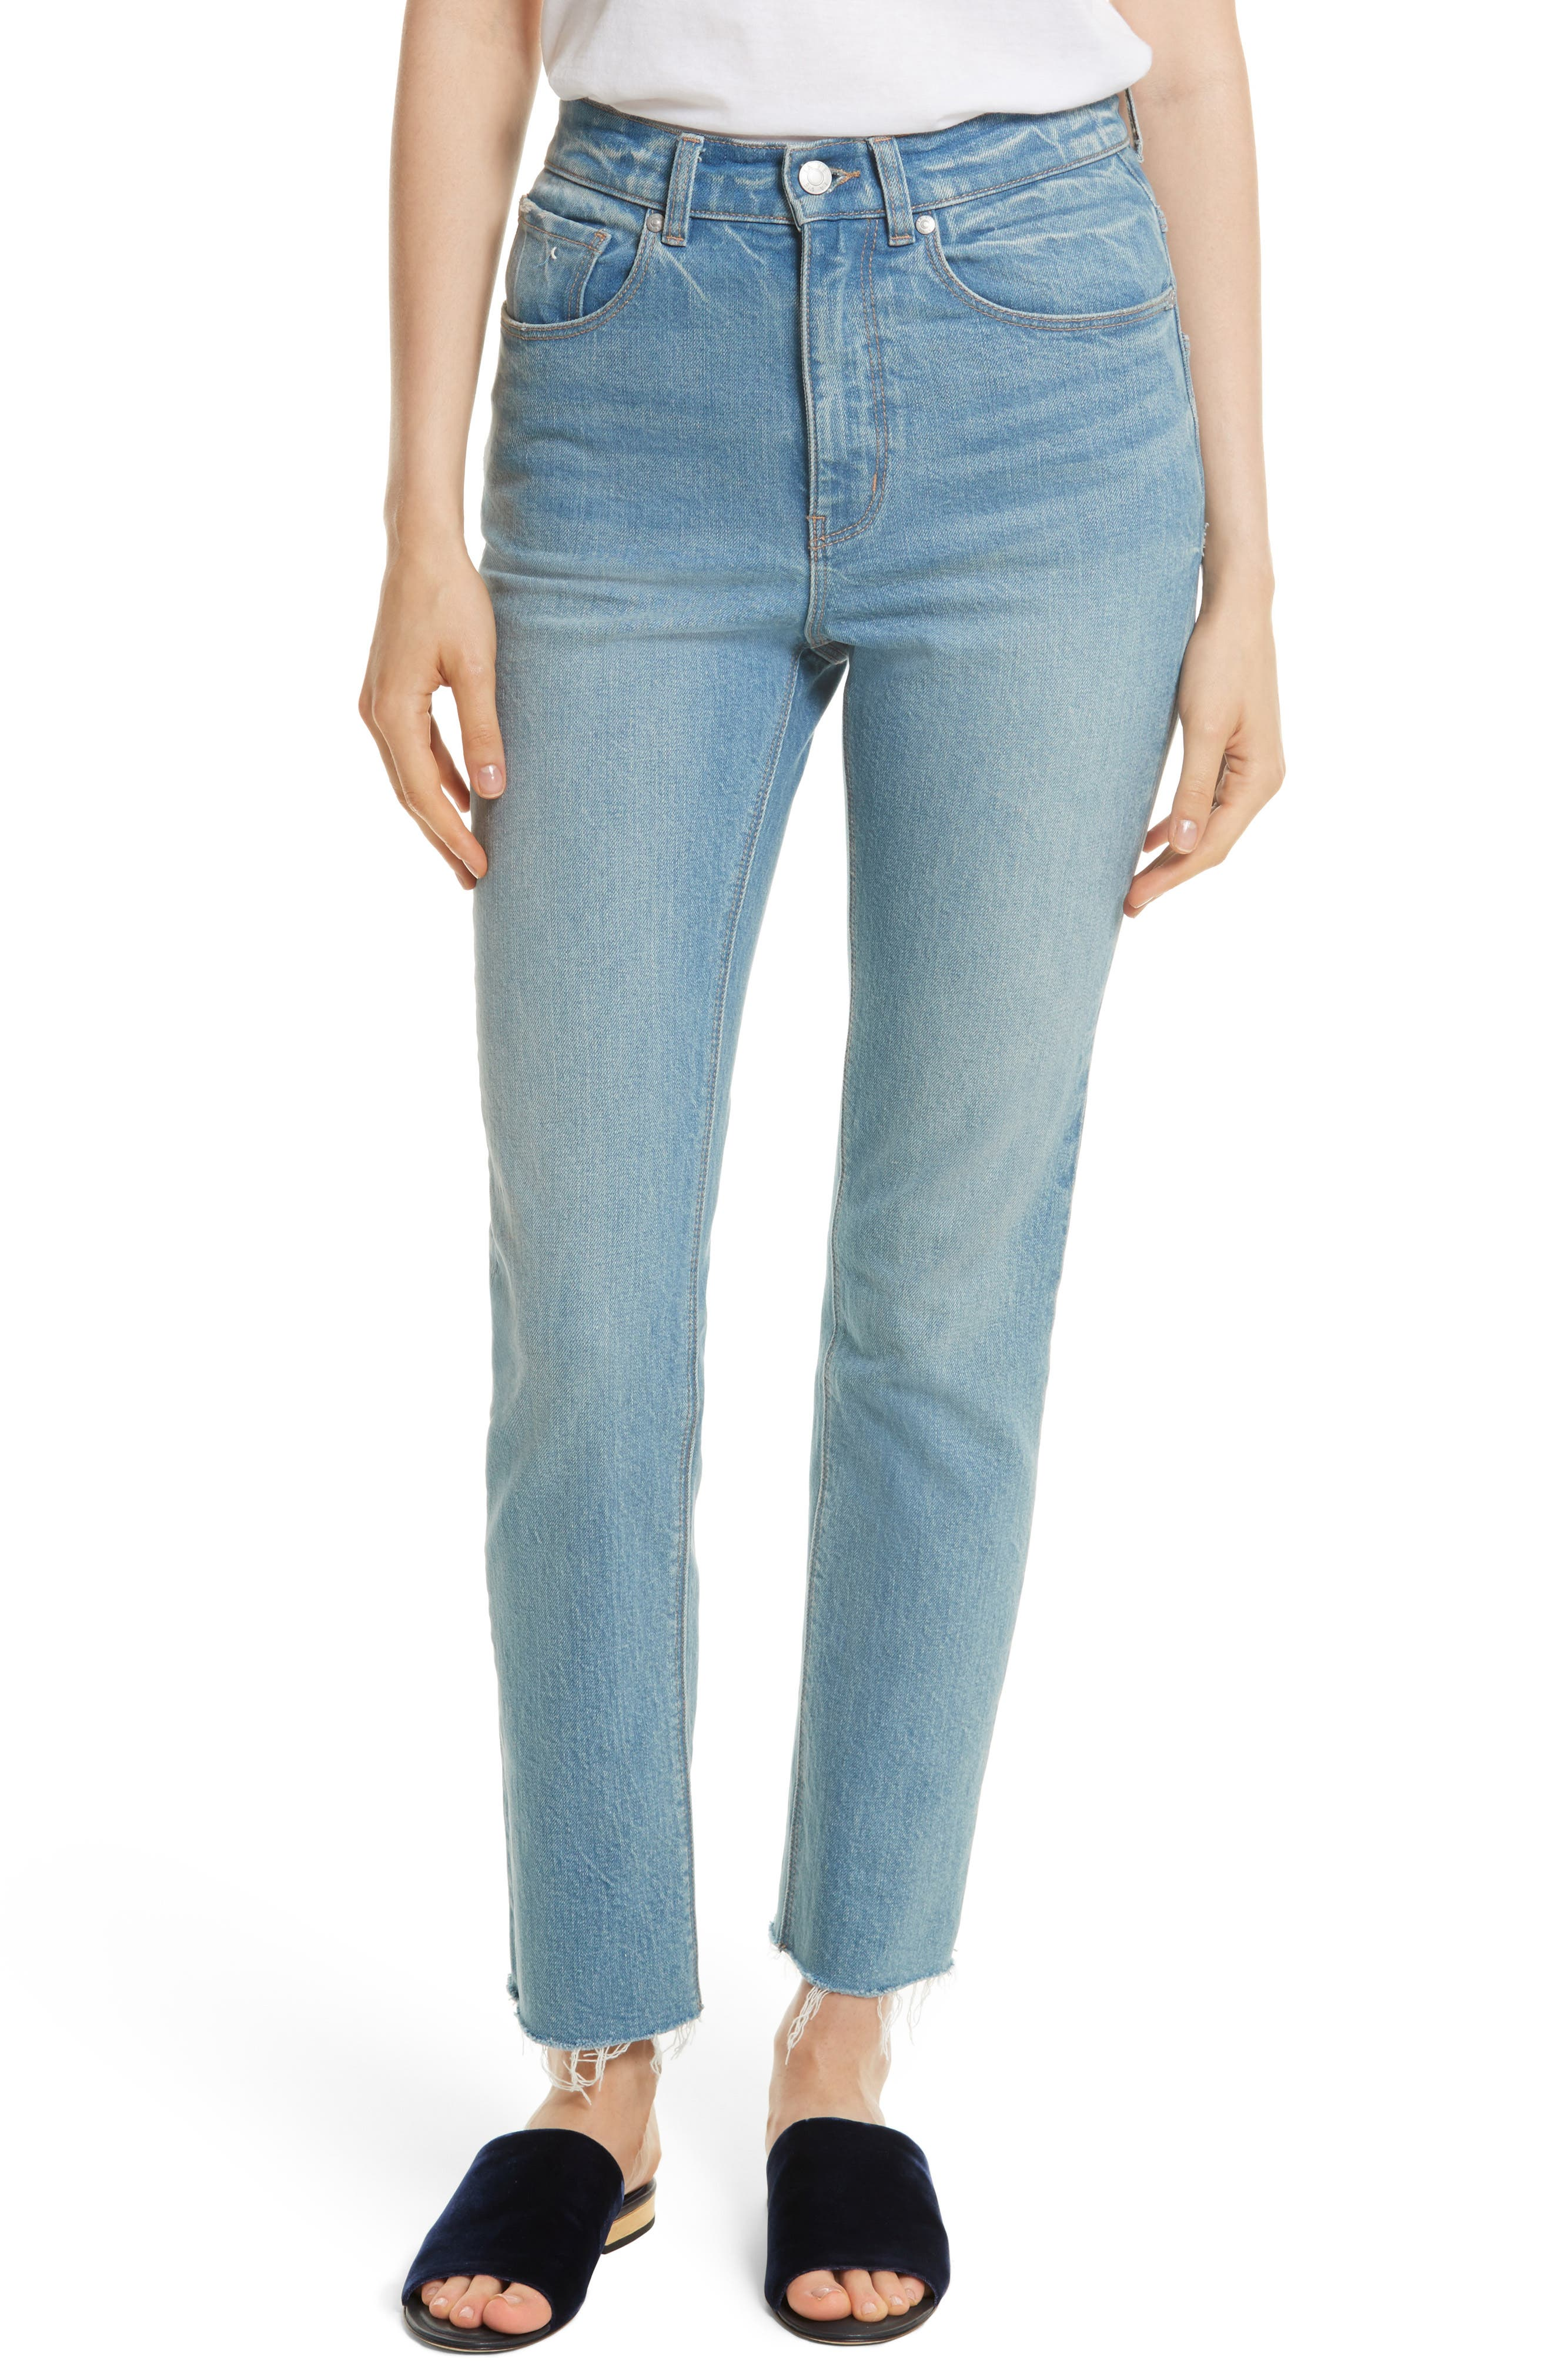 Alternate Image 1 Selected - La Vie Rebecca Taylor Ines High Waist Ankle Jeans (Bluebell)